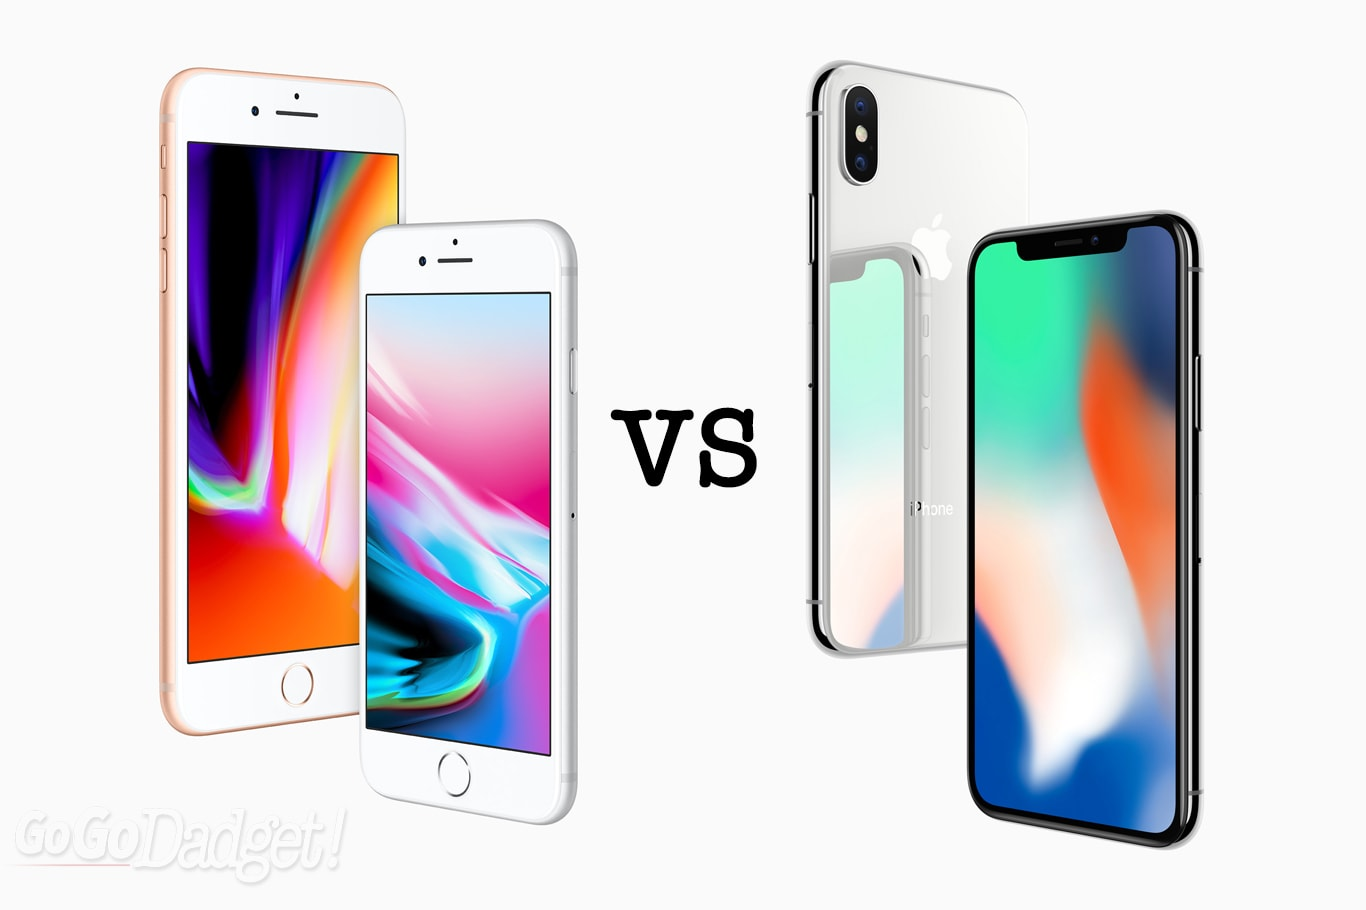 87d78687fe10 When it comes down to it, I didn't even consider the small iPhone 8. I just  can't justify not having access to the truly impressive things Apple is  doing, ...